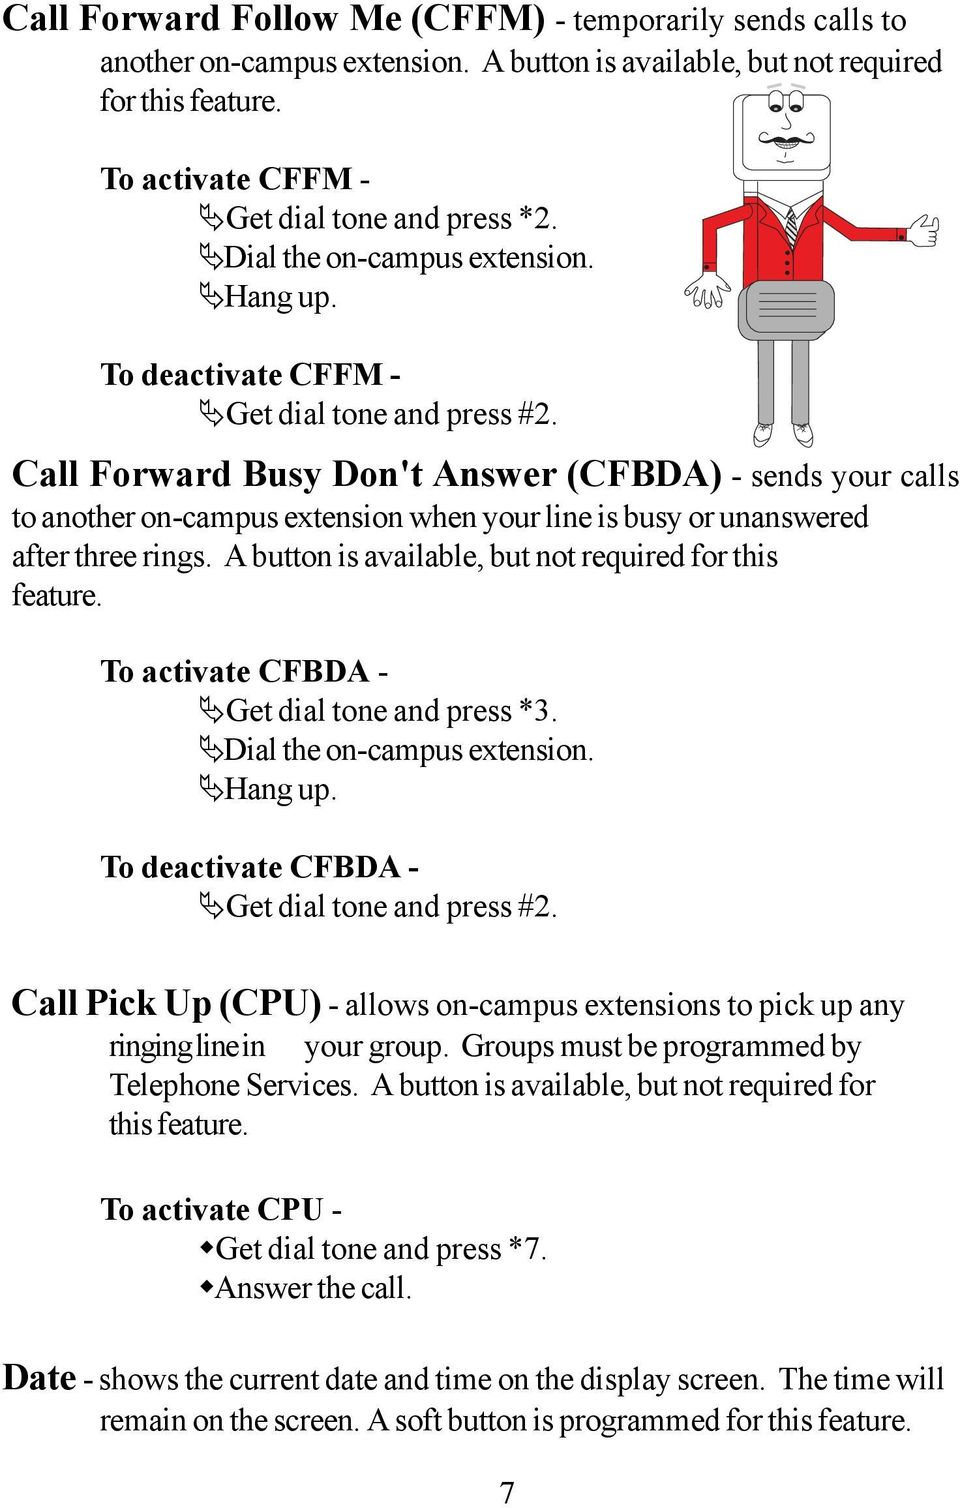 Call Forward Busy Don't Answer (CFBDA) - sends your calls to another on-campus extension when your line is busy or unanswered after three rings.